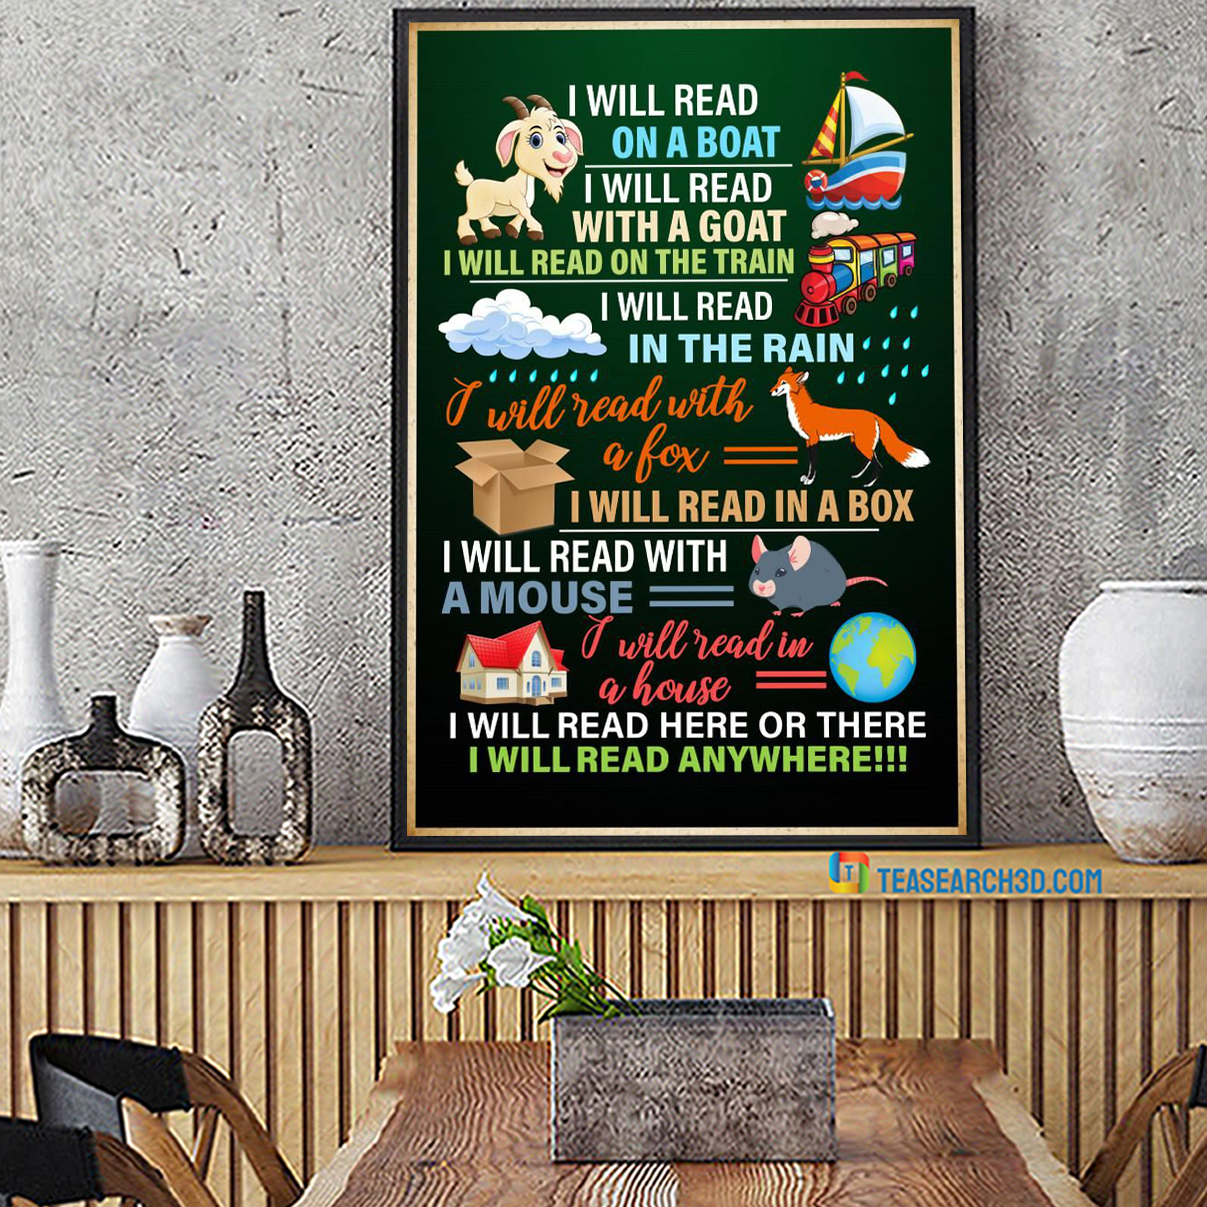 I will read on a boat I will read with a goat poster